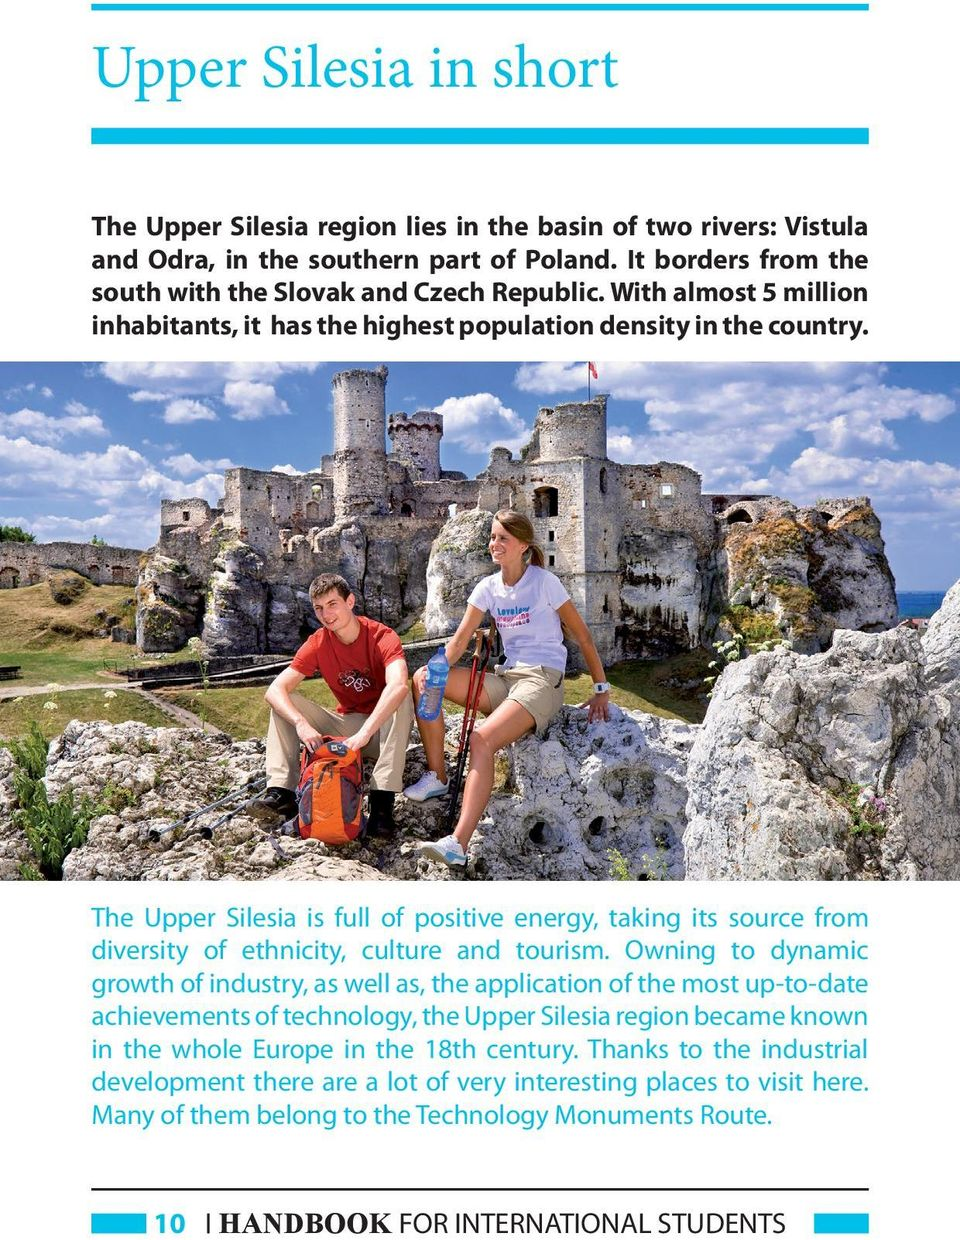 The Upper Silesia is full of positive energy, taking its source from diversity of ethnicity, culture and tourism.